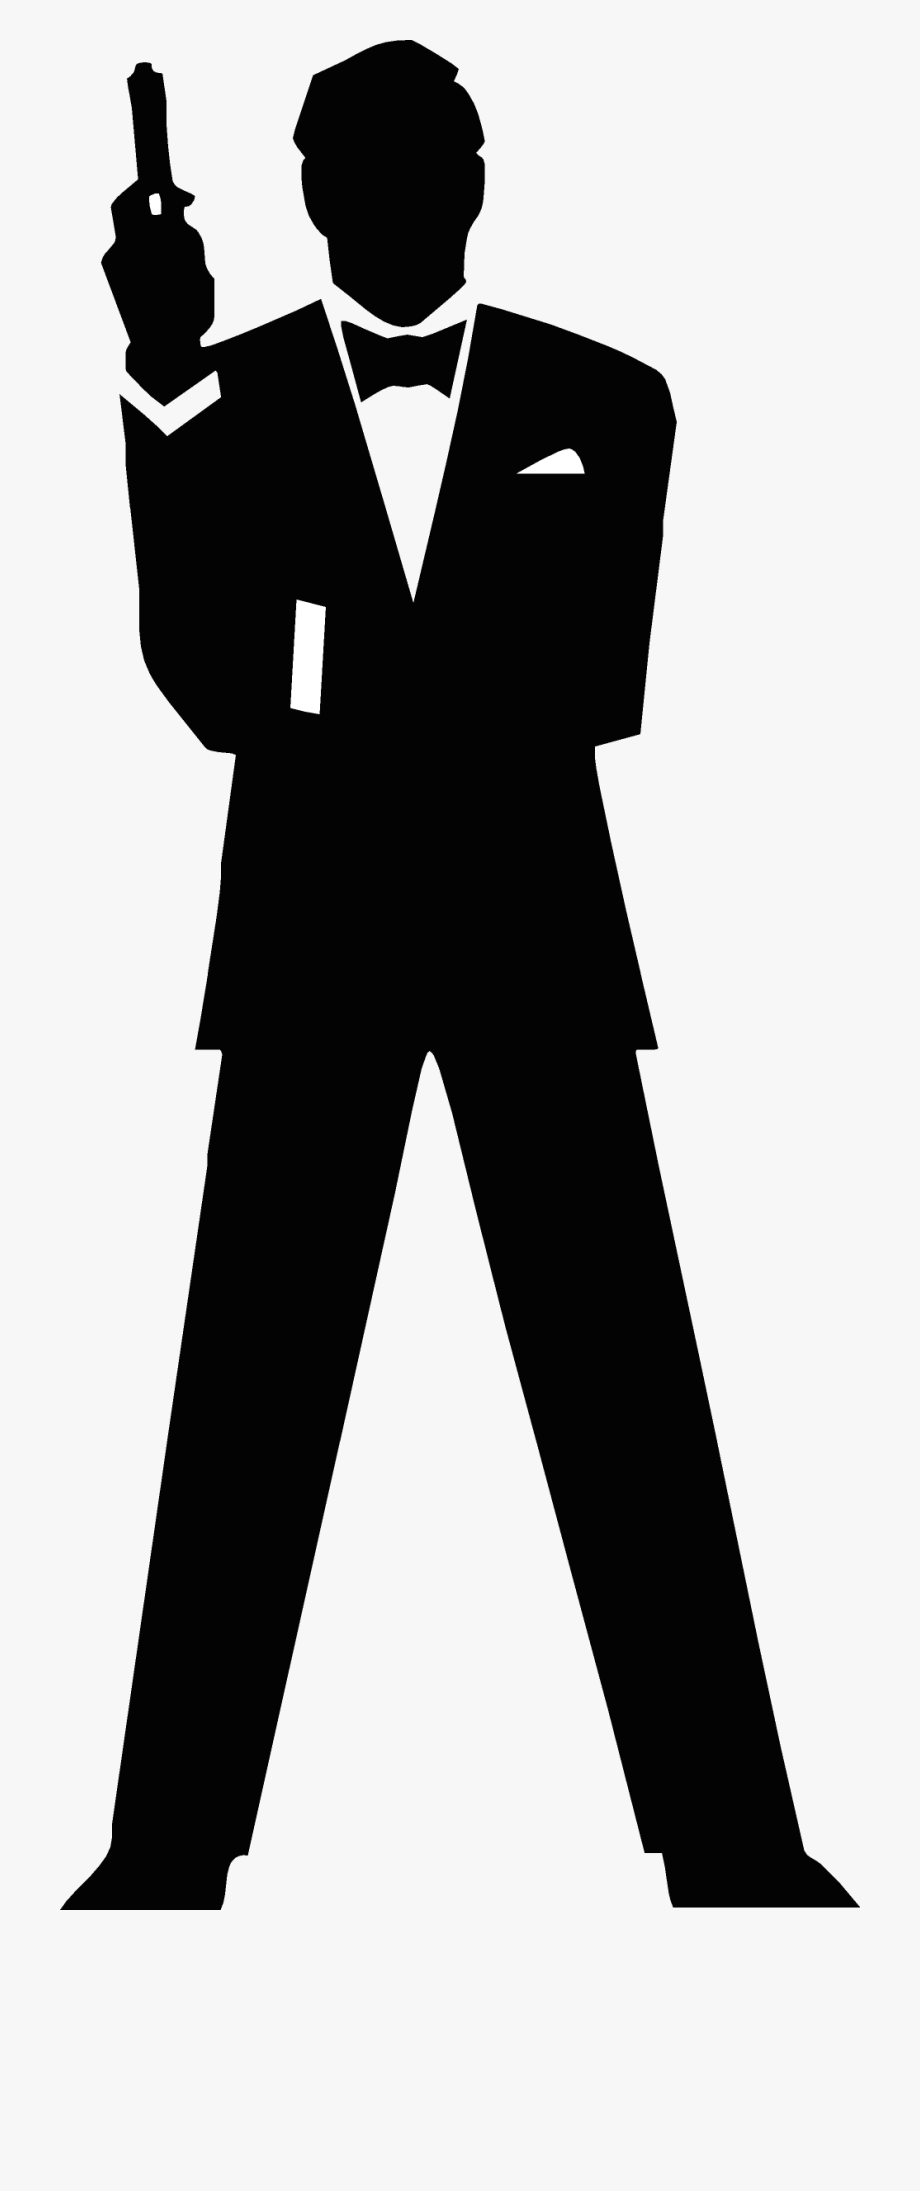 Bond 007 clipart clipart transparent library Agent Cliparts - James Bond 007 Silhouette #495958 - Free Cliparts ... clipart transparent library